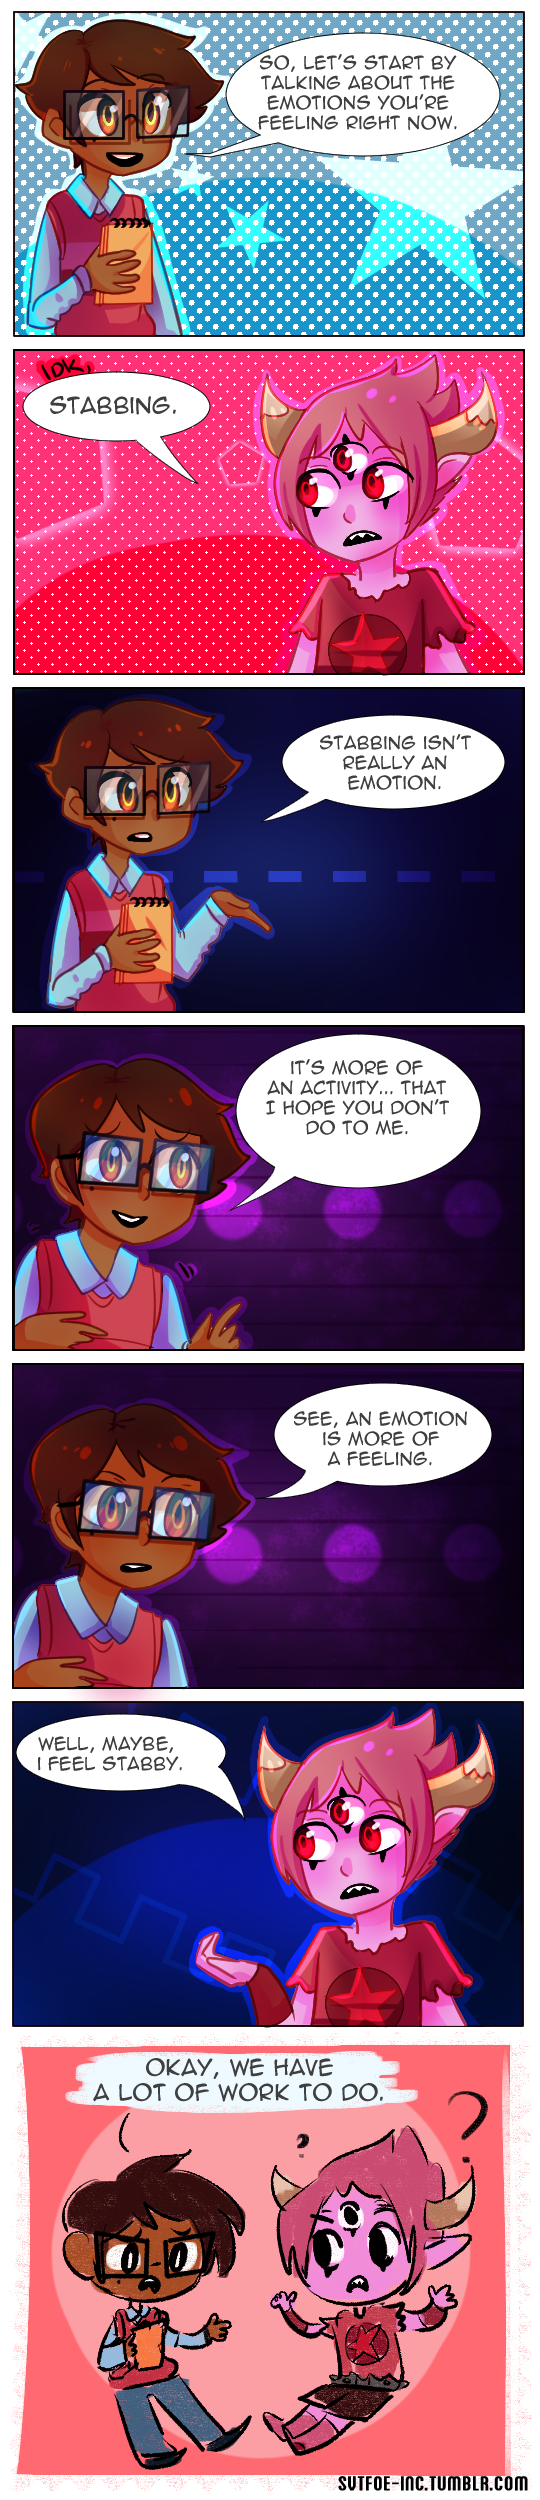 Tomco Comic by starrrryskies on DeviantArt